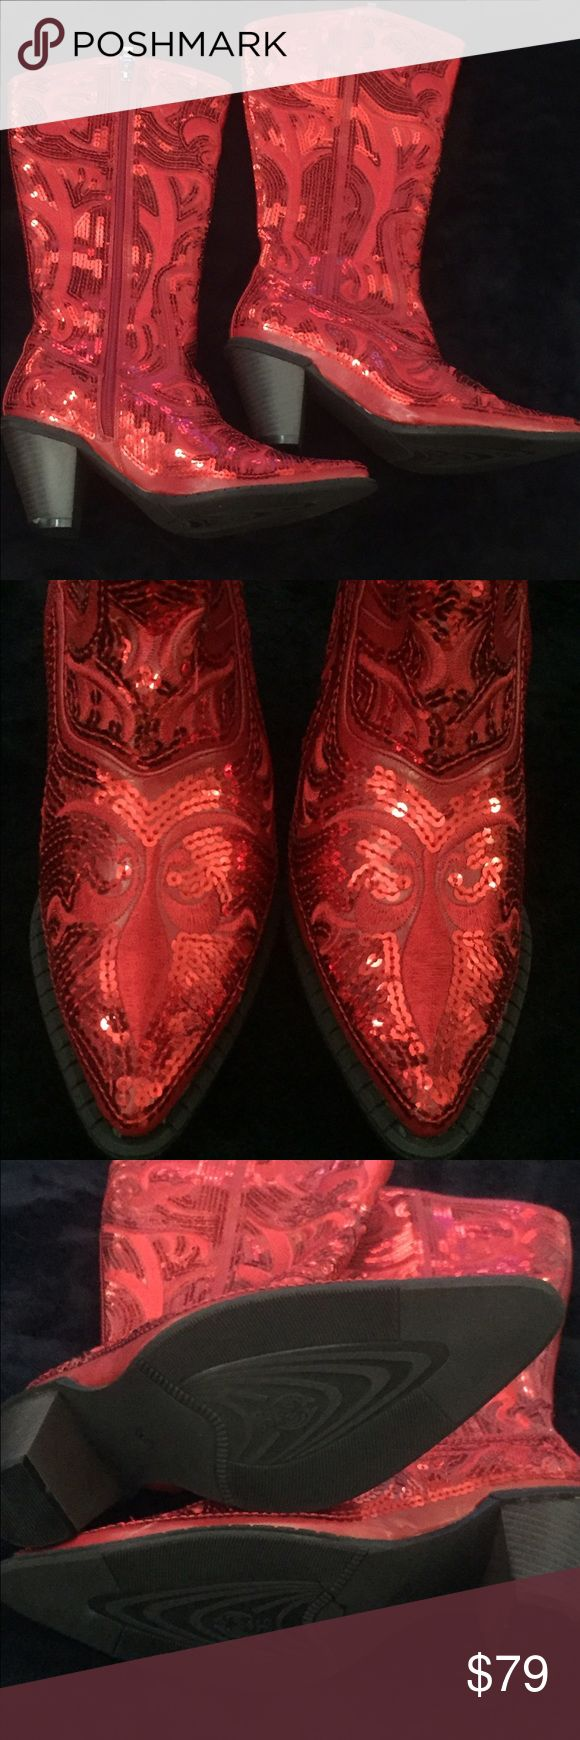 John Fashion Sequins Cowboy Boots Red cowboys boots embellished in red sequins.  These boots are New without box.  They have never been worn. JohnFashion Shoes Heeled Boots